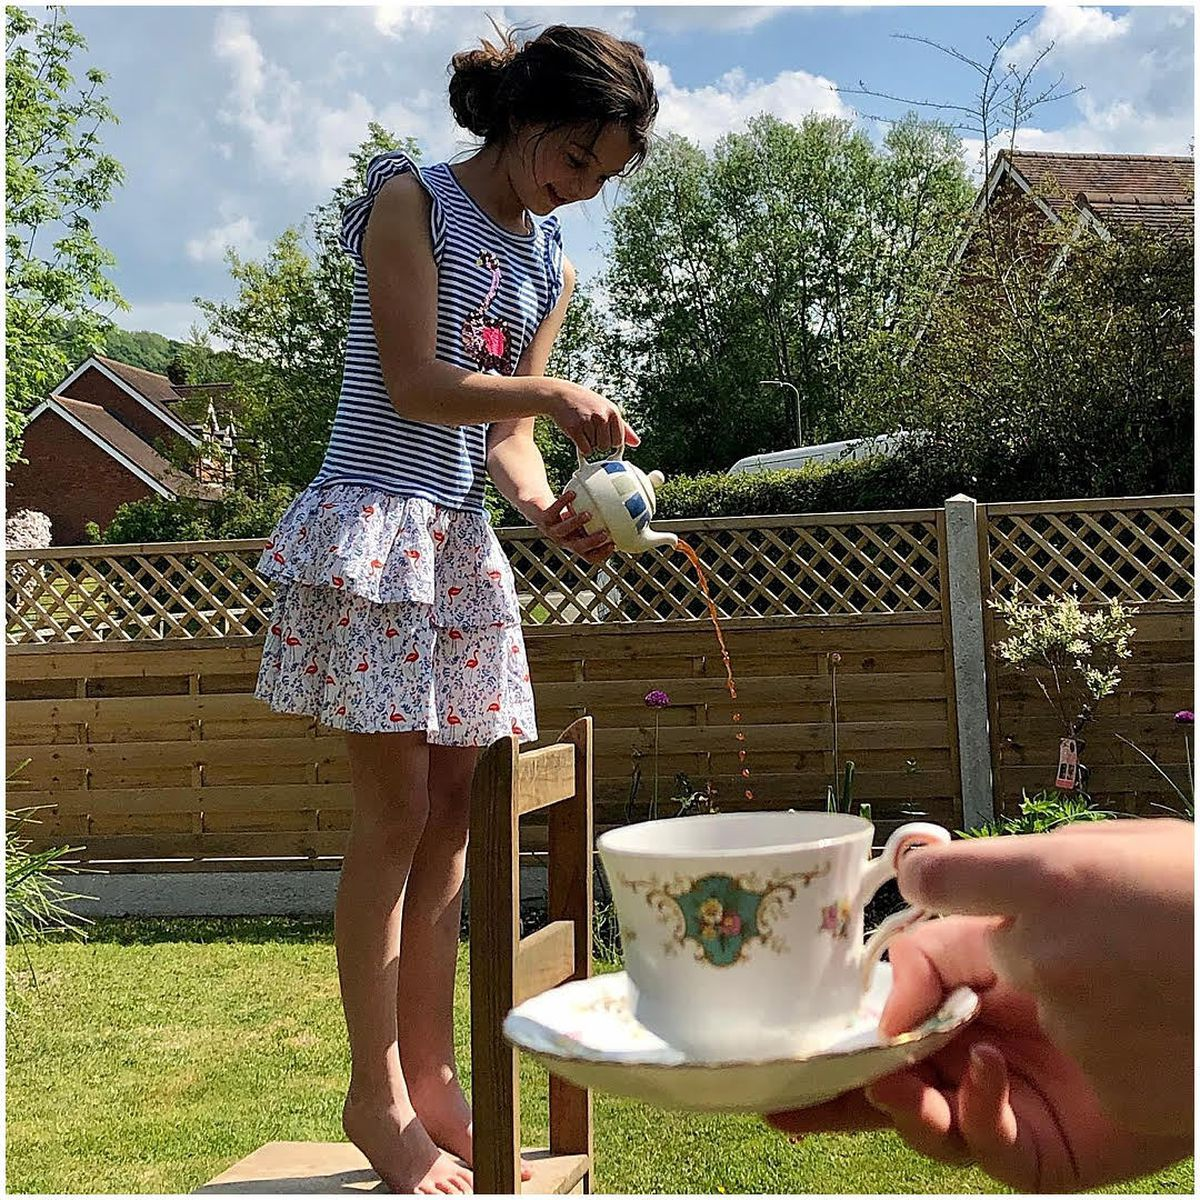 Anyone for tea? Julia Morgan took this creative shot of her daughter pouring into a cup